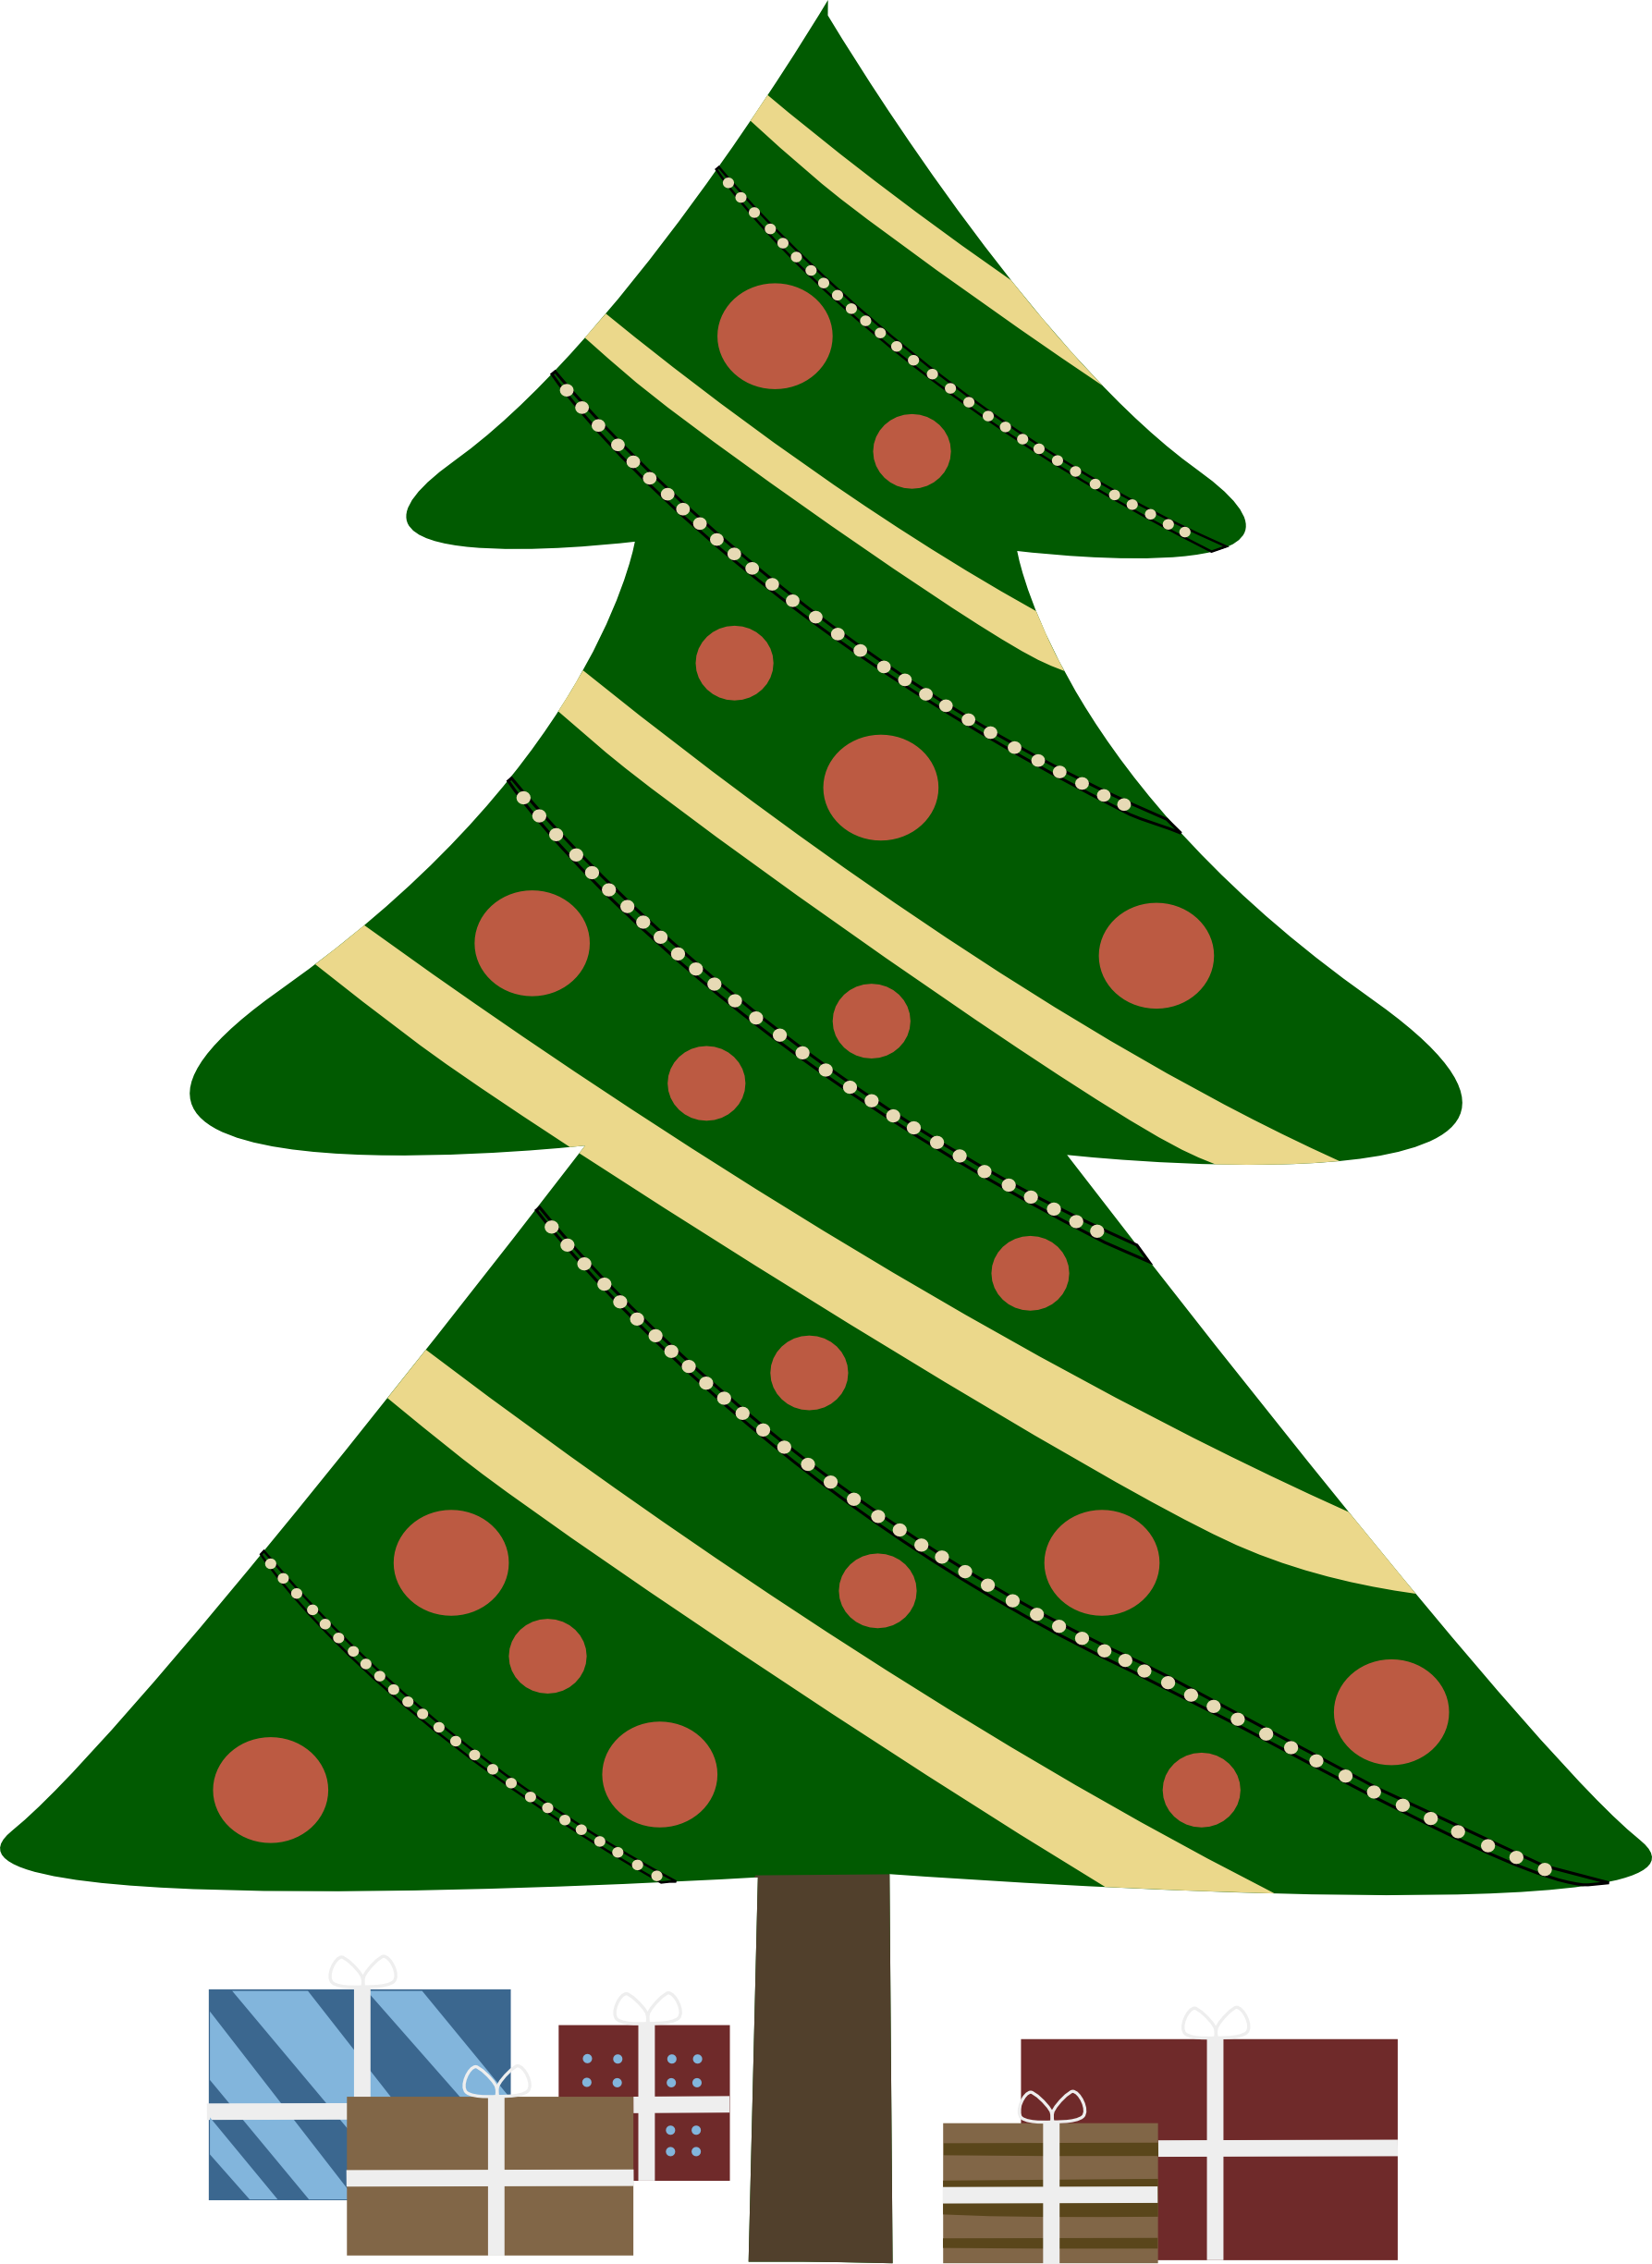 Abstract Christmas Tree Clipart - Clipart Kid